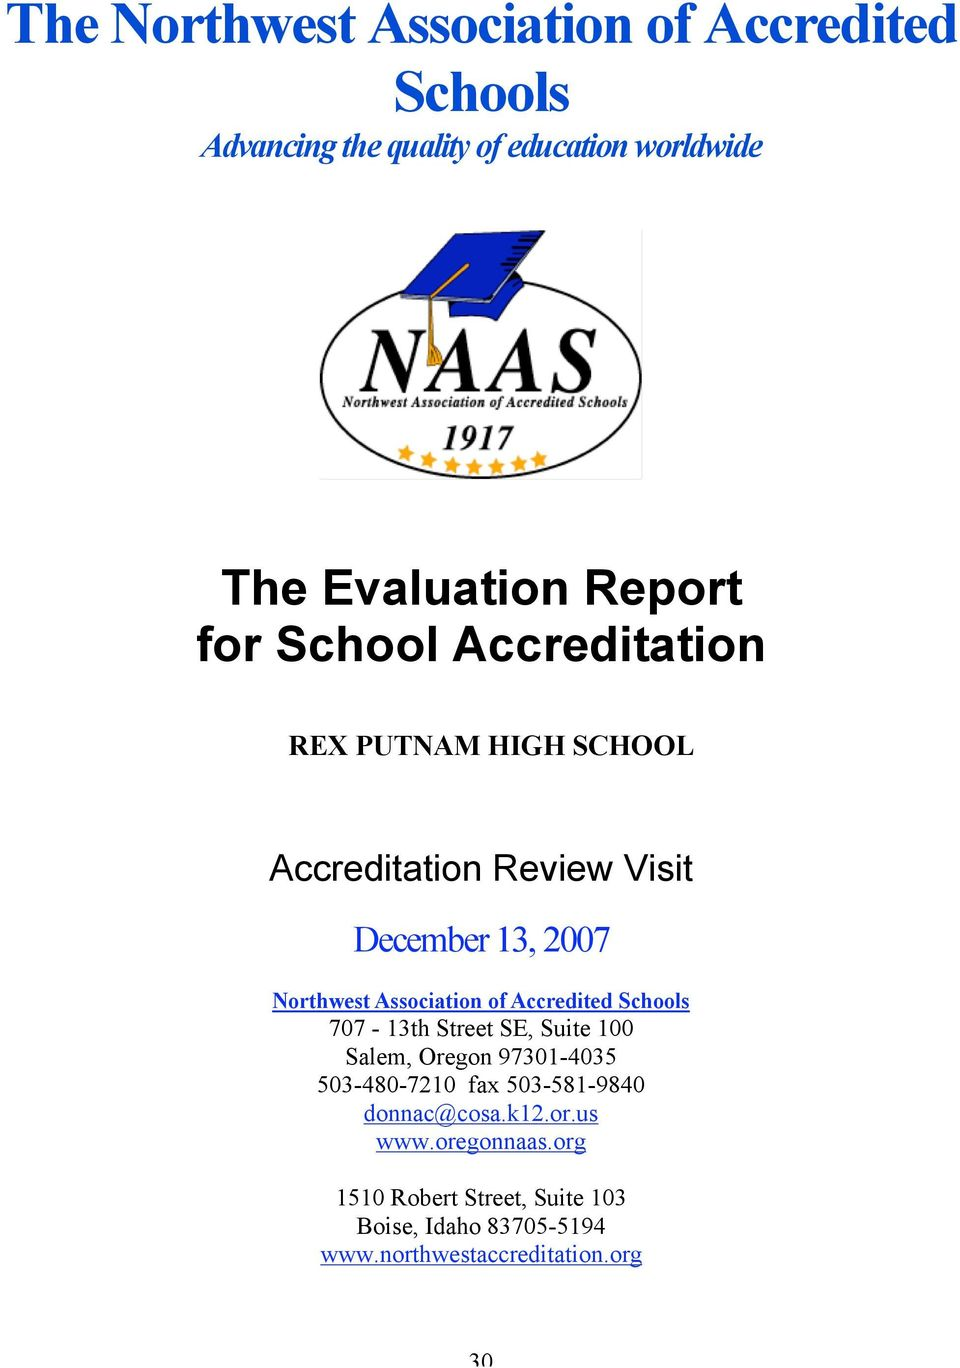 of Accredited Schools 707-13th Street SE, Suite 100 Salem, Oregon 971-4035 503-480-7210 fax 503-581-9840